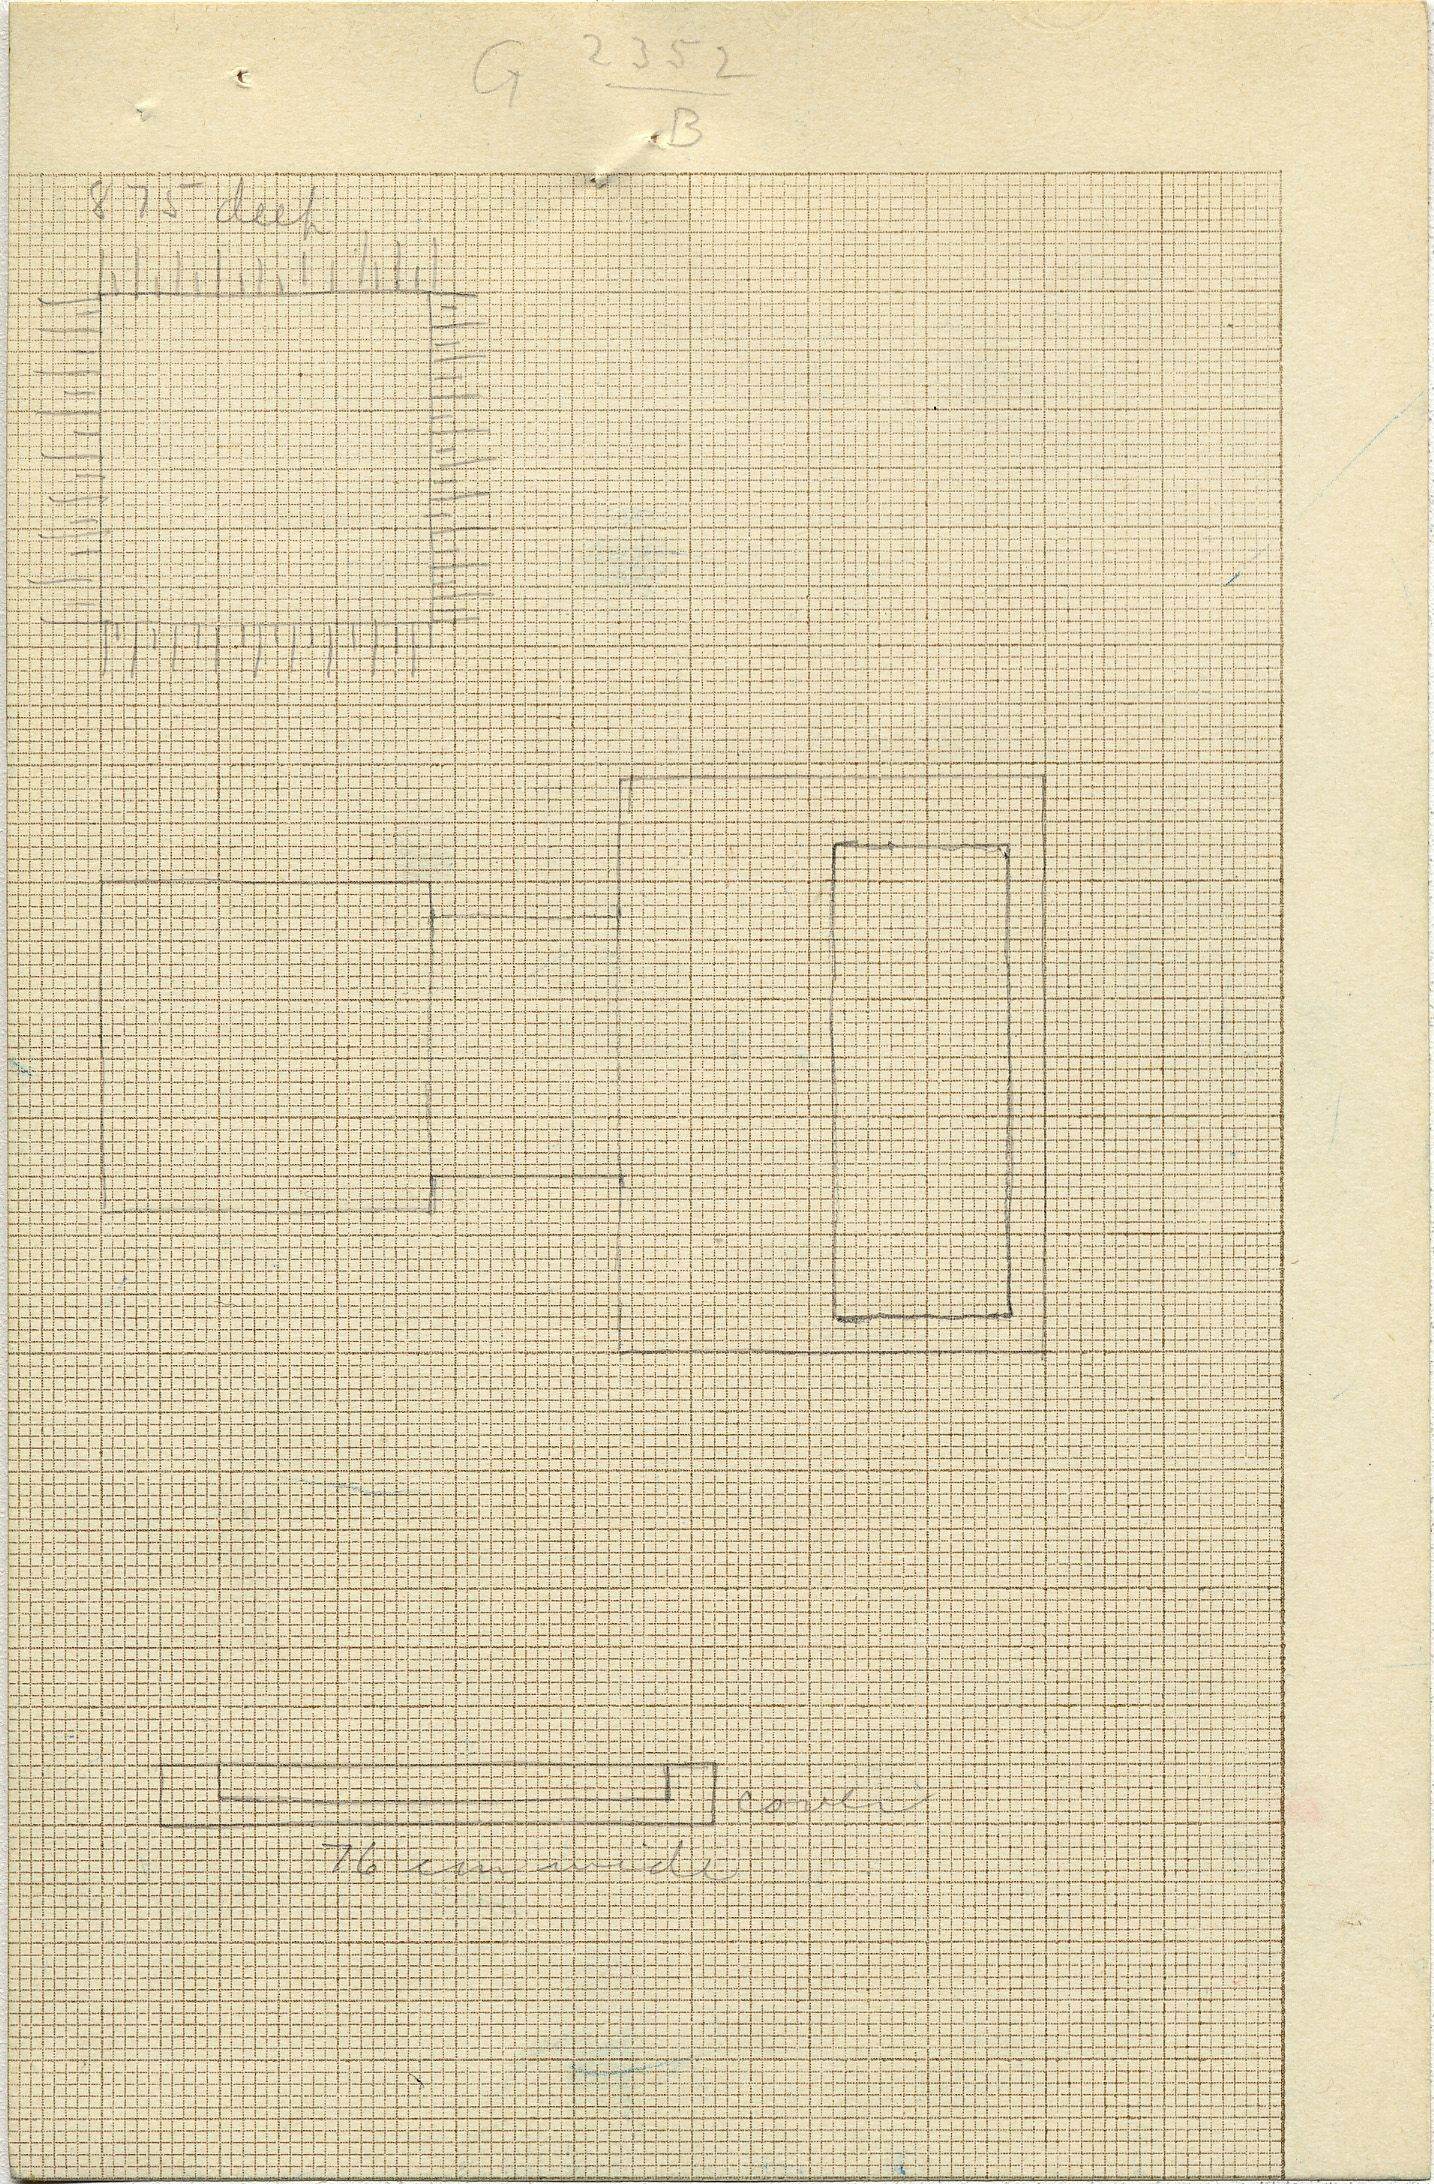 Maps and plans: G 2352, Shaft B